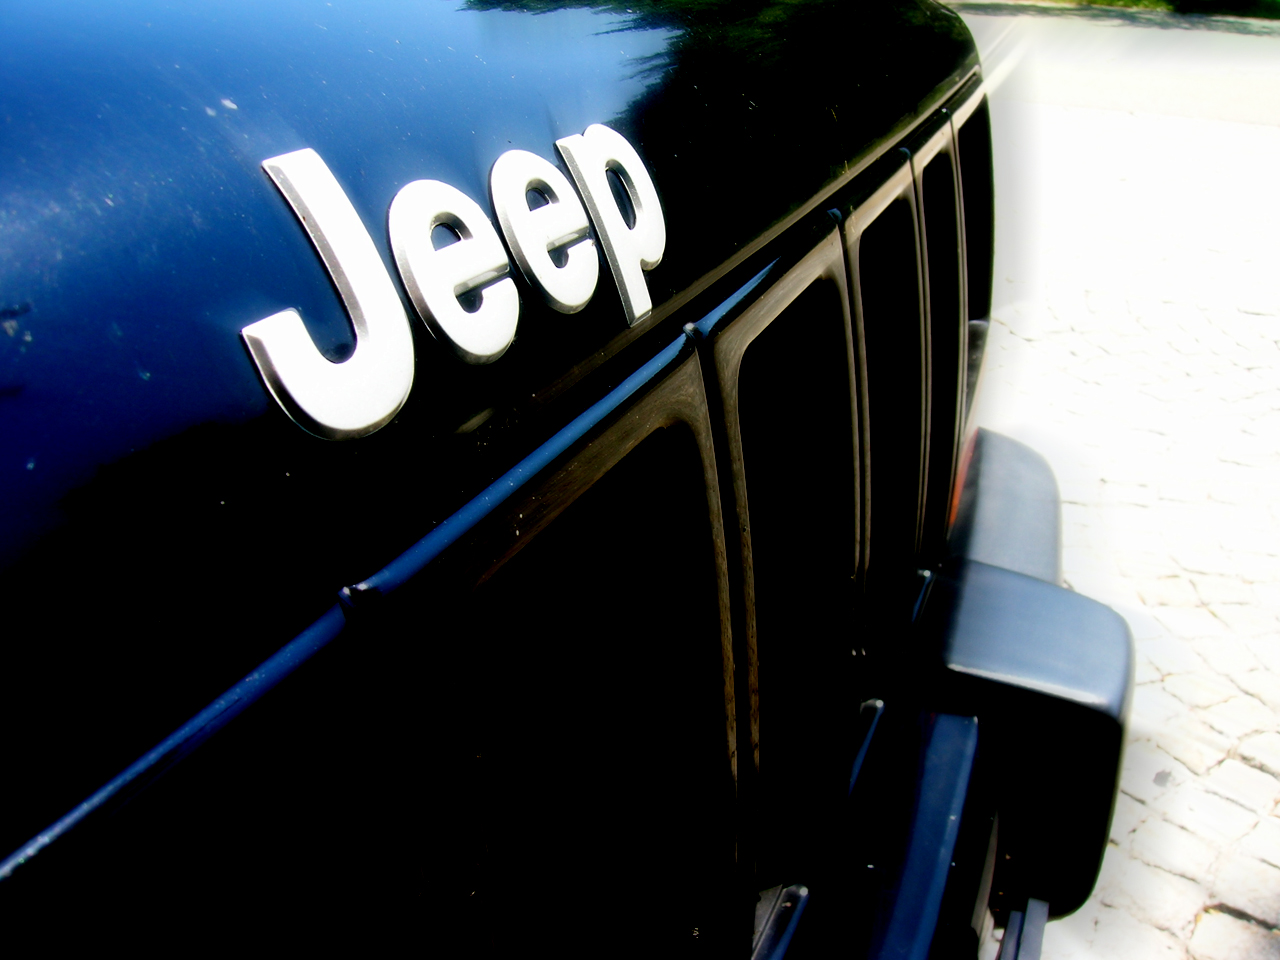 Jeep Logo, Jeep Car Symbol Meaning and History | Car Brand ...